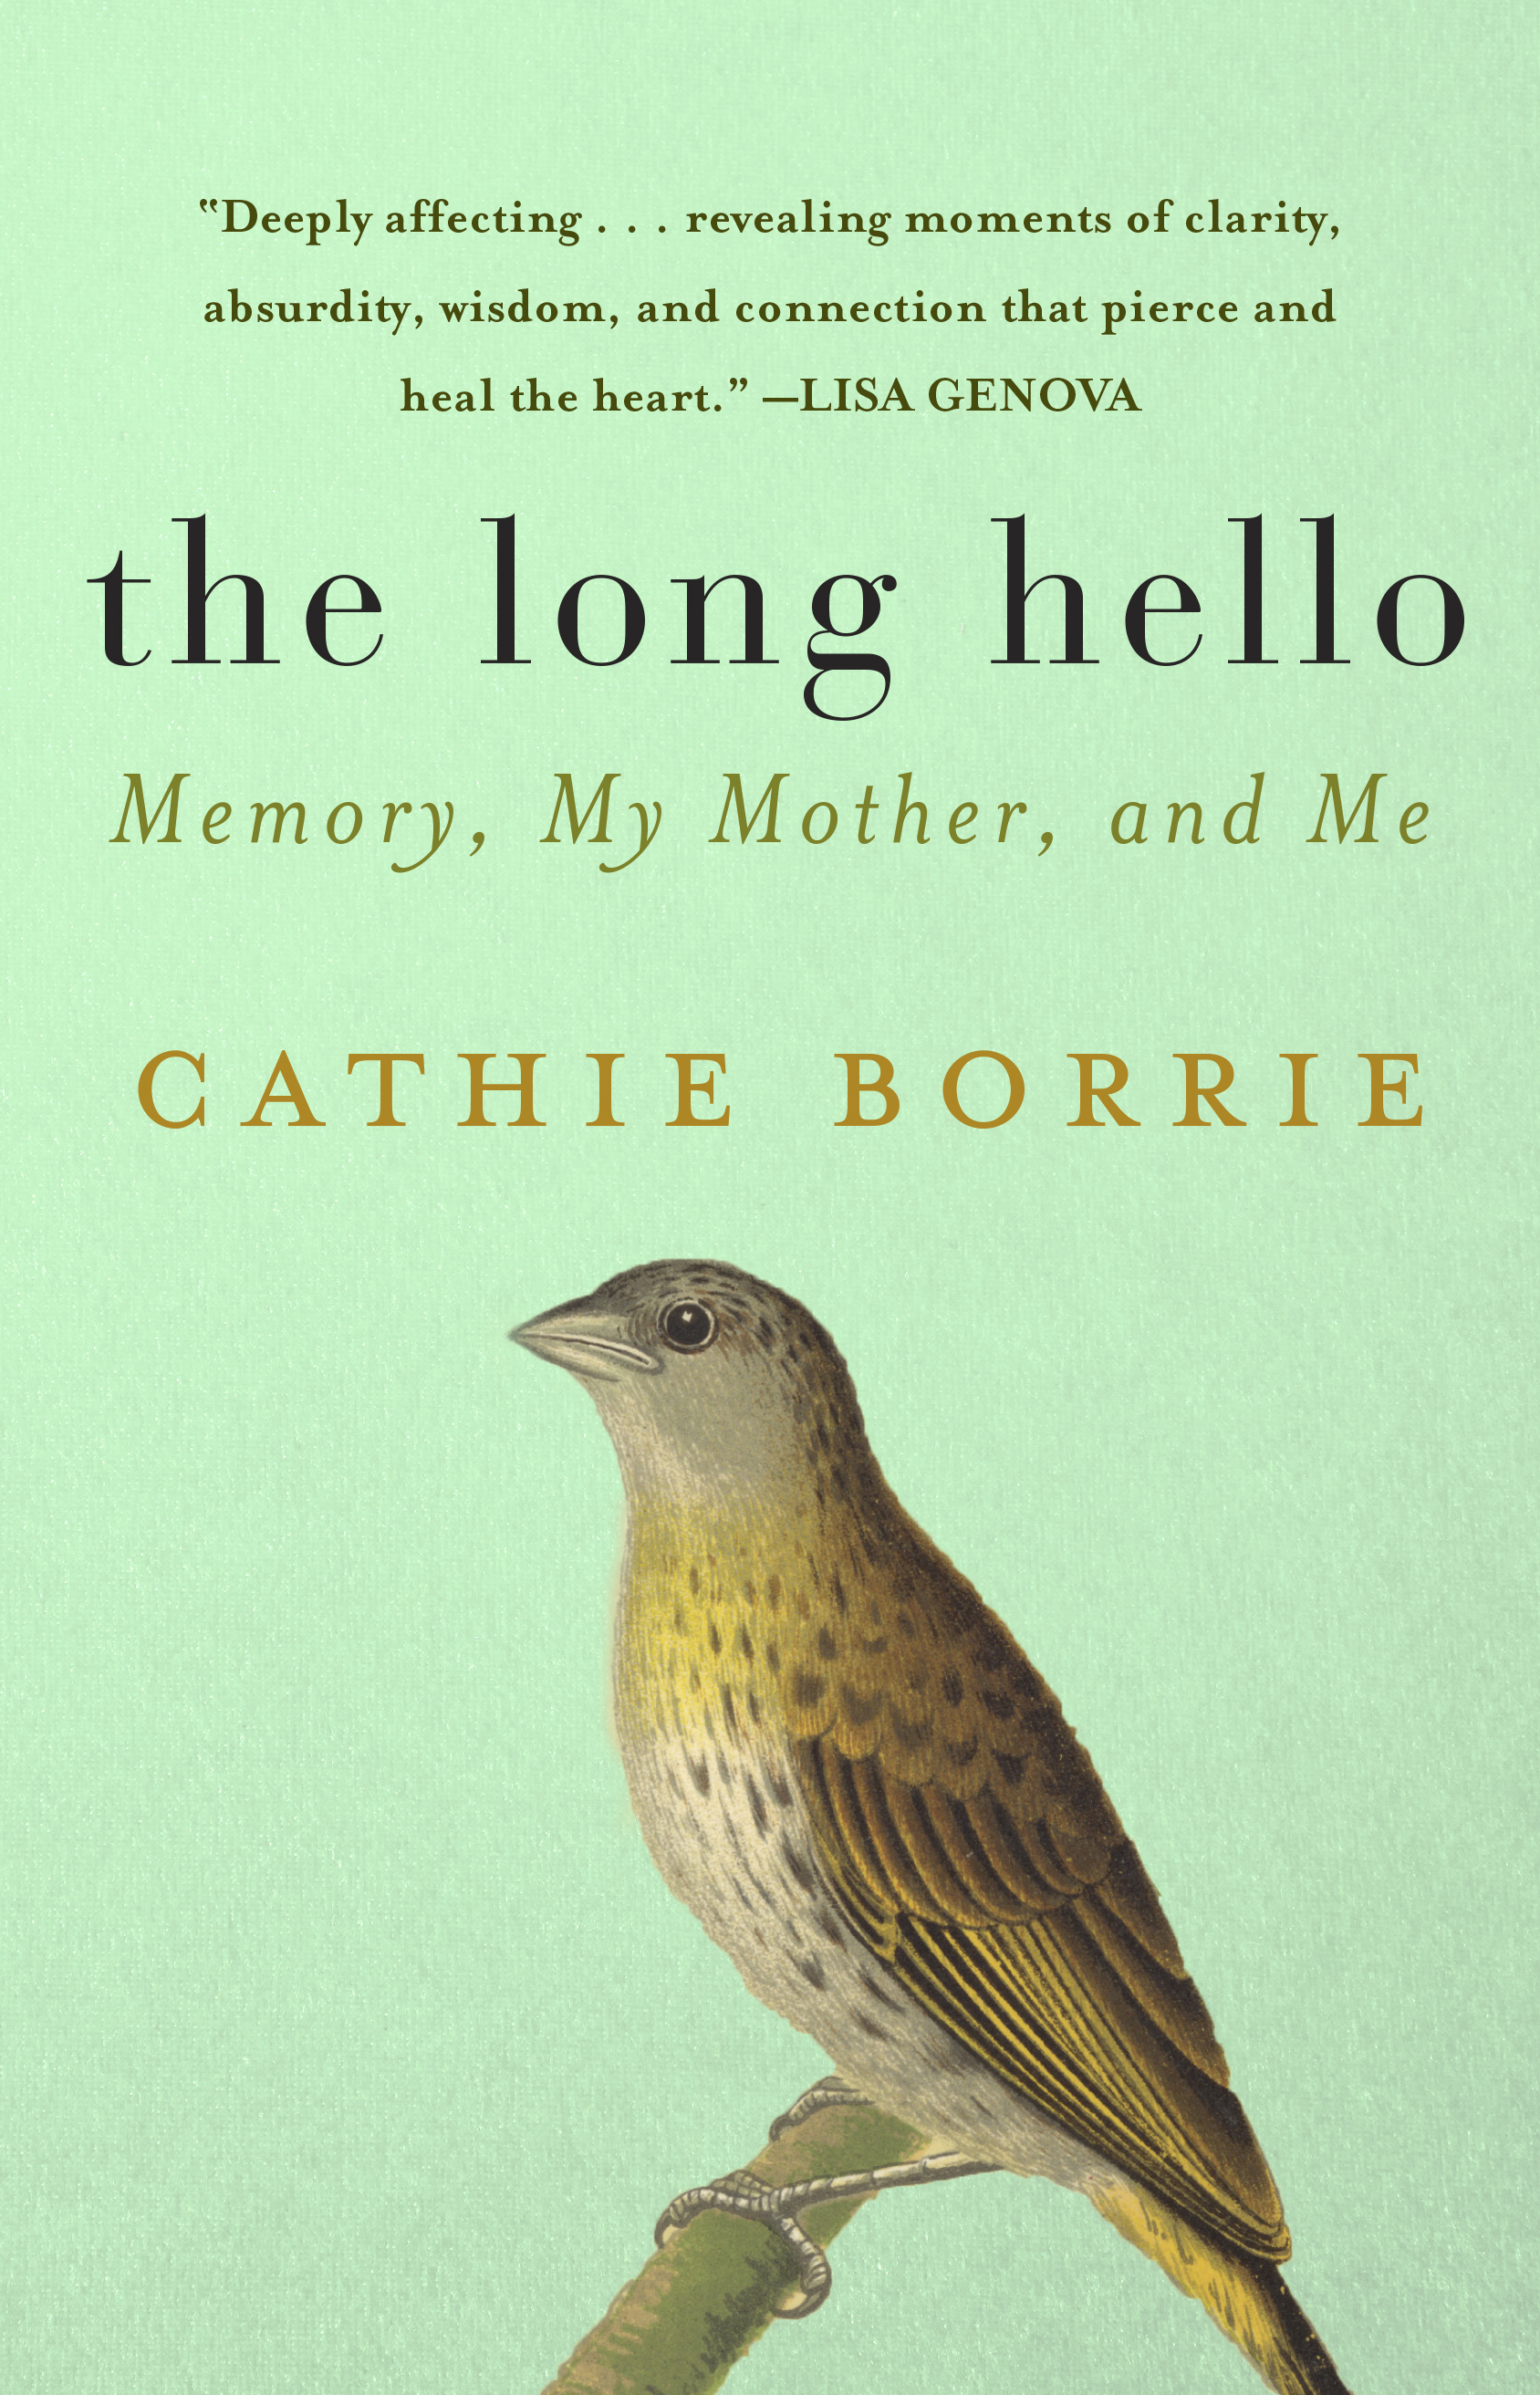 Cathie Borrie on Getting a Book Deal When No One Wants to Publish Your ...